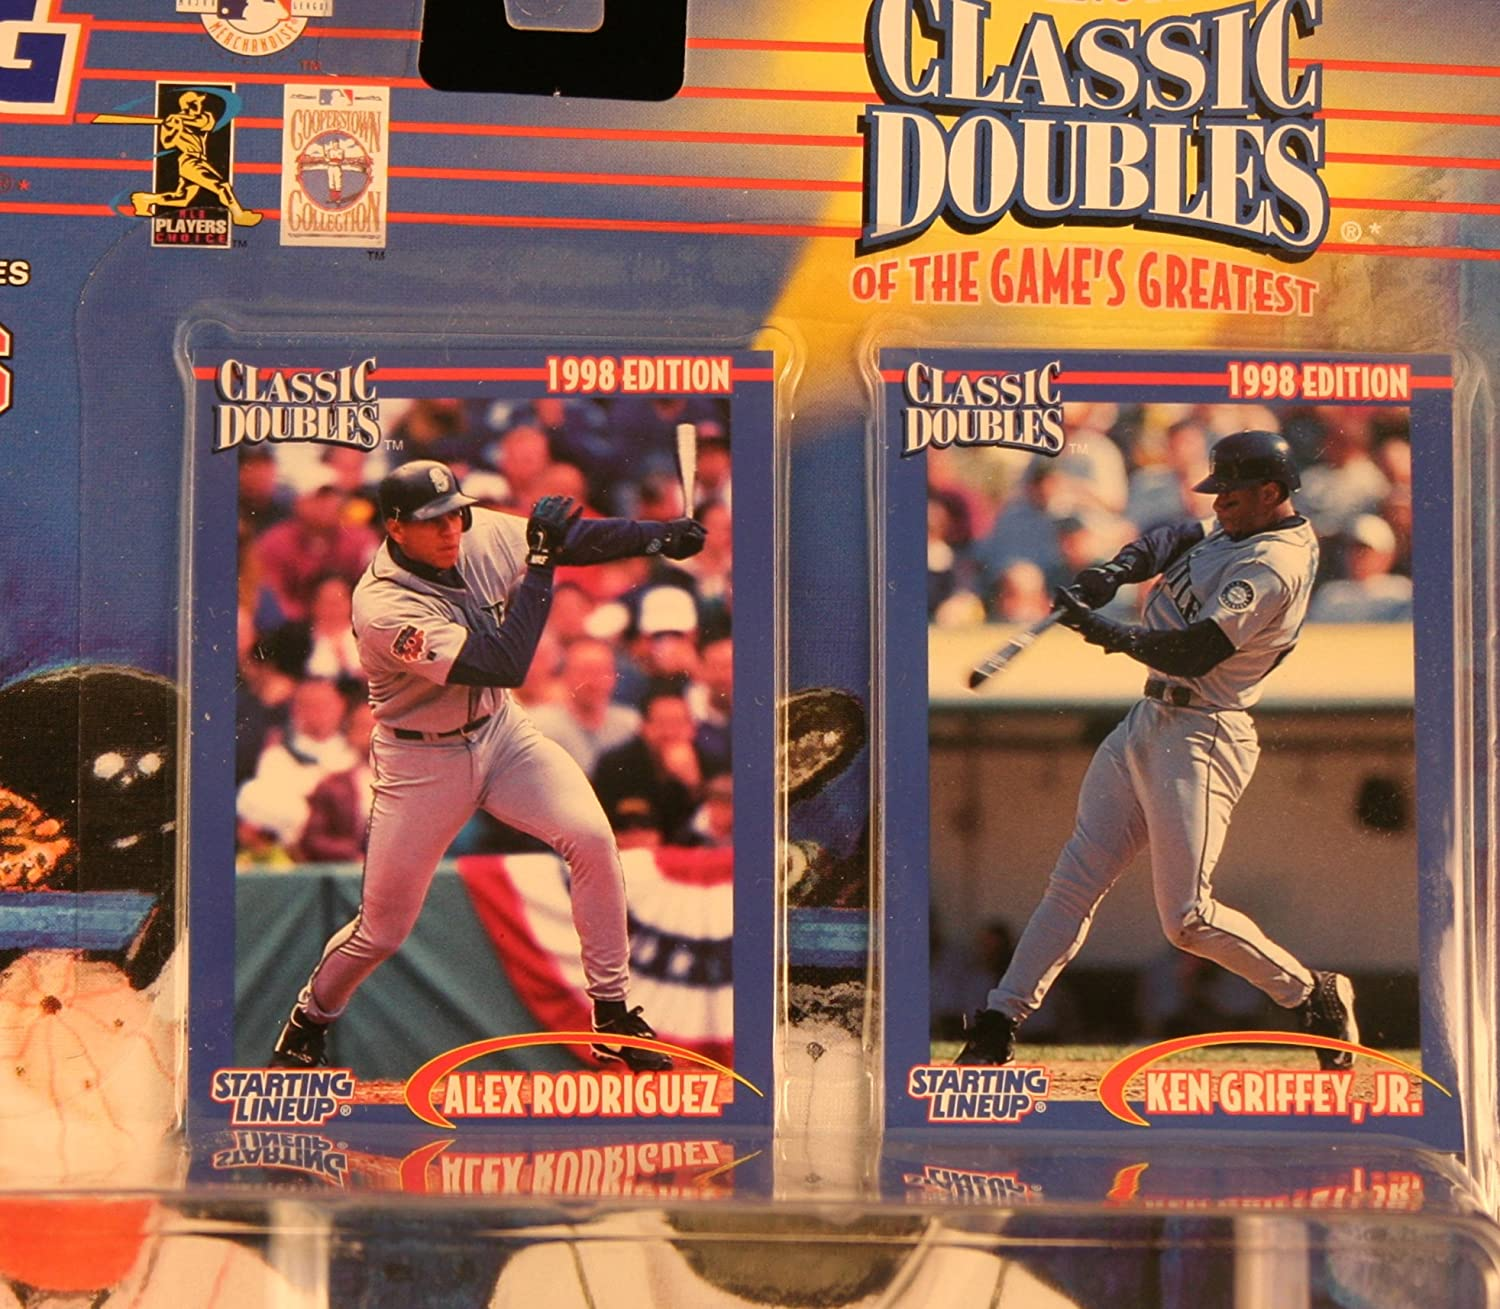 35532fbeca Amazon.com: ALEX RODRIGUEZ / SEATTLE MARINERS & KEN GRIFFEY JR. / SEATTLE  MARINERS 1998 MLB Classic Doubles * Winning Pairs Series * Starting Lineup  Action ...